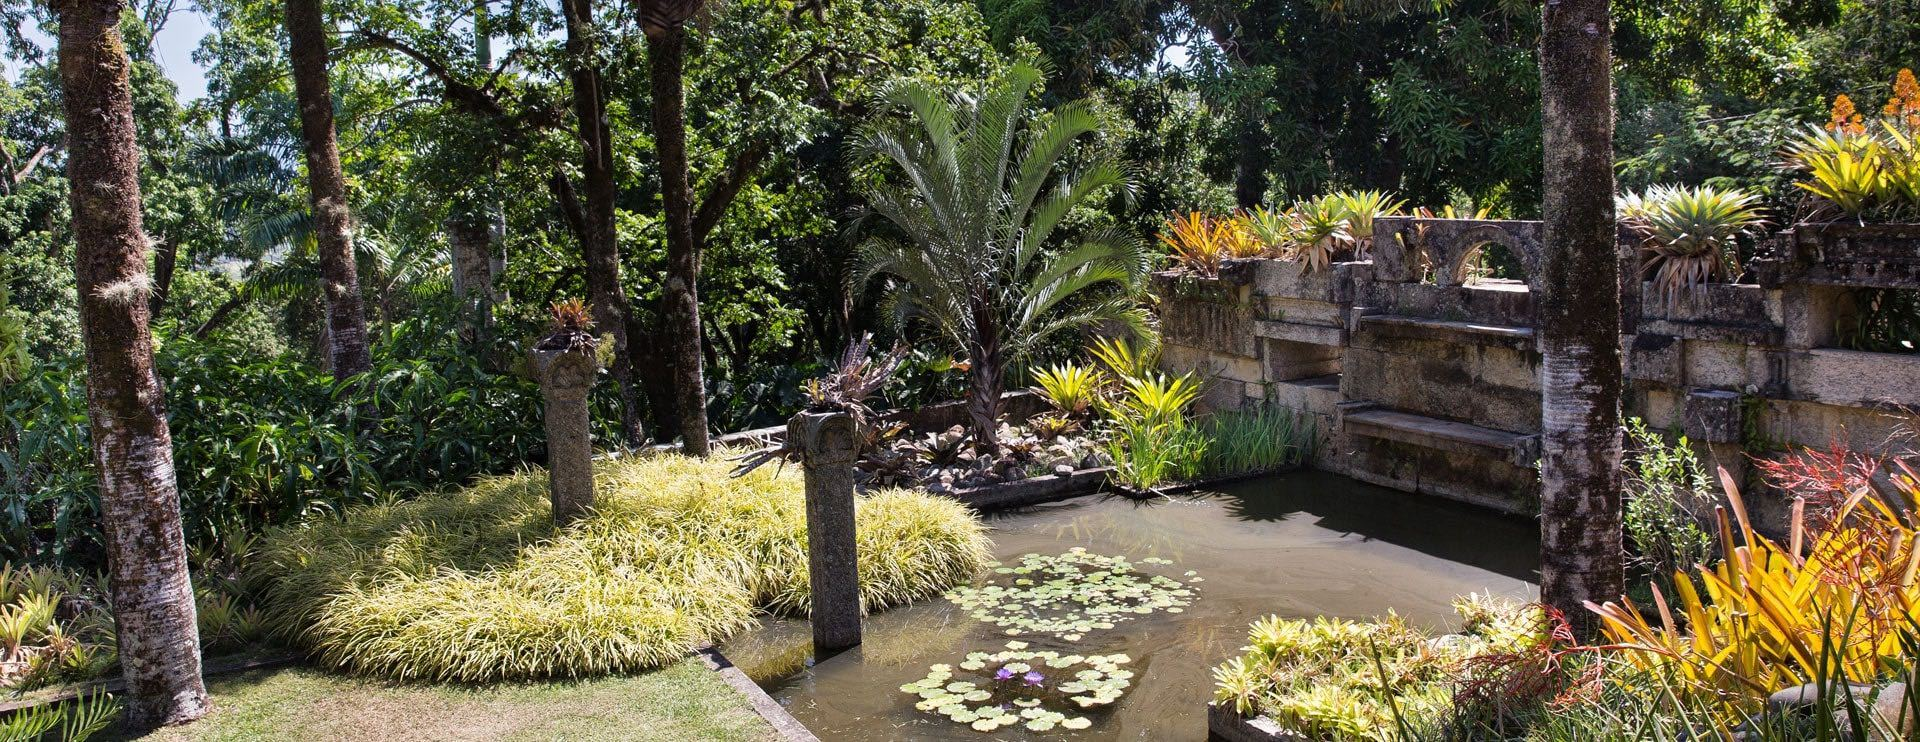 The Living Art of Roberto Burle Marx at New York Botanical Garden